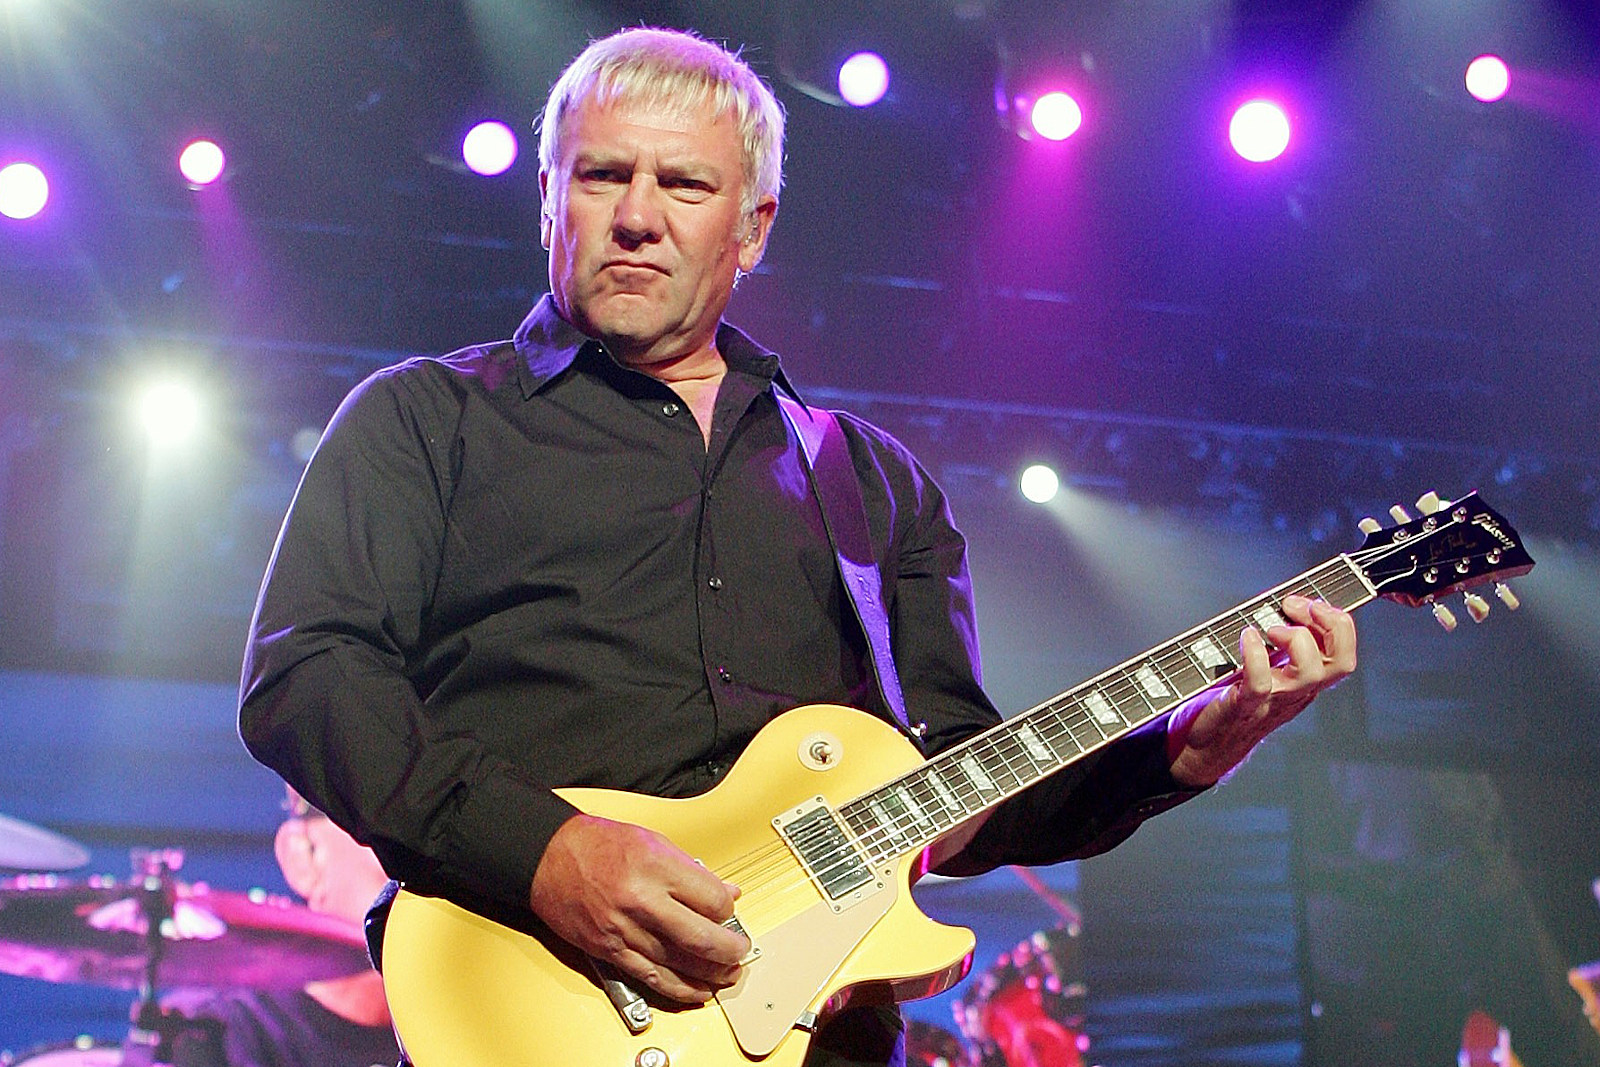 Alex Lifeson 'Very Excited' About New 'Envy of None' Project